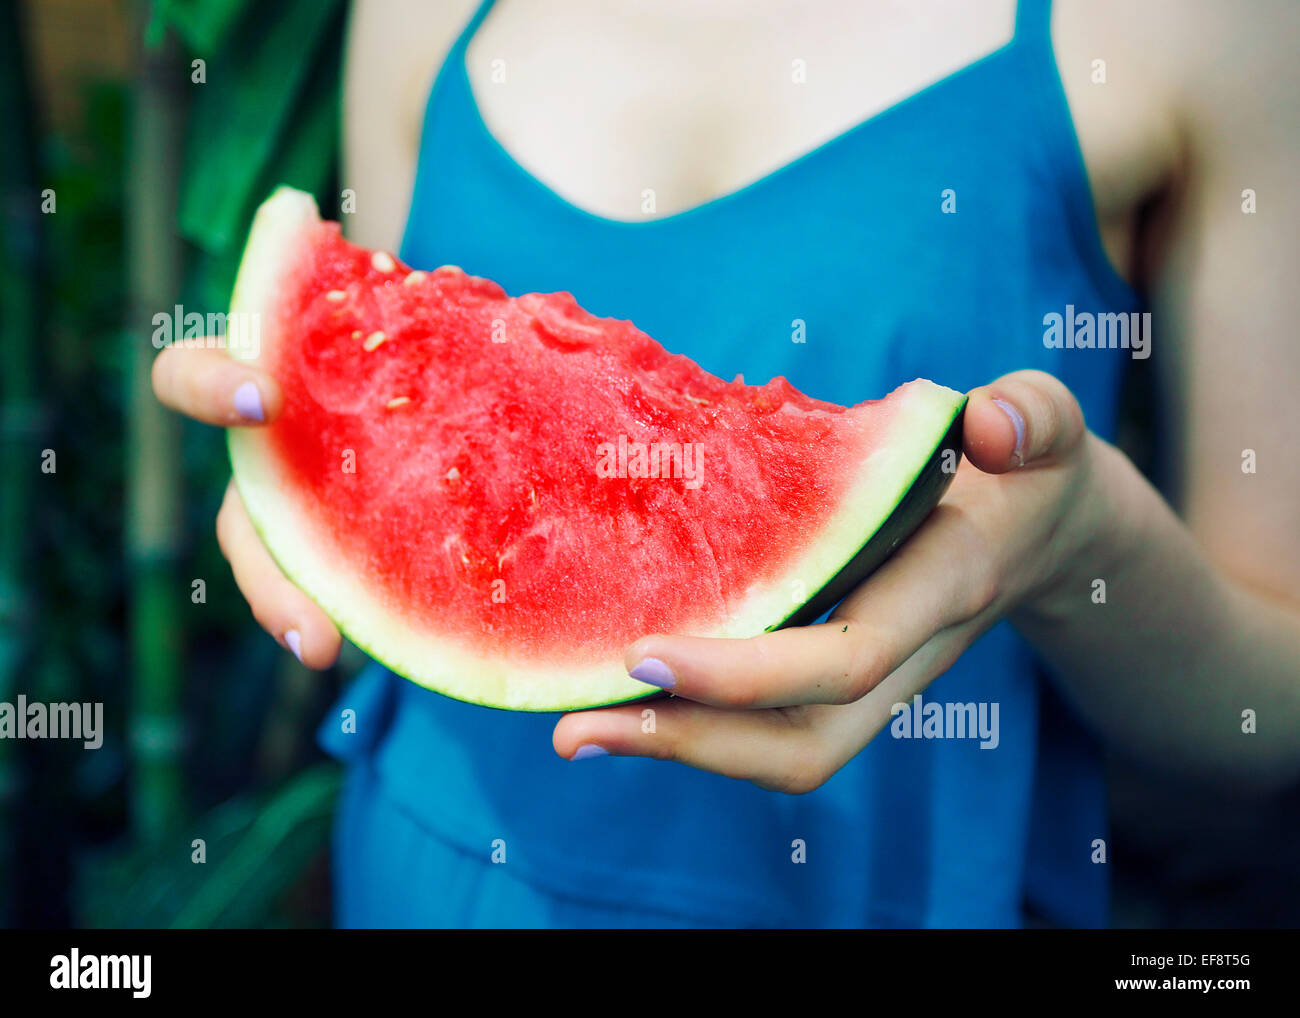 Woman holding slice of watermelon - Stock Image